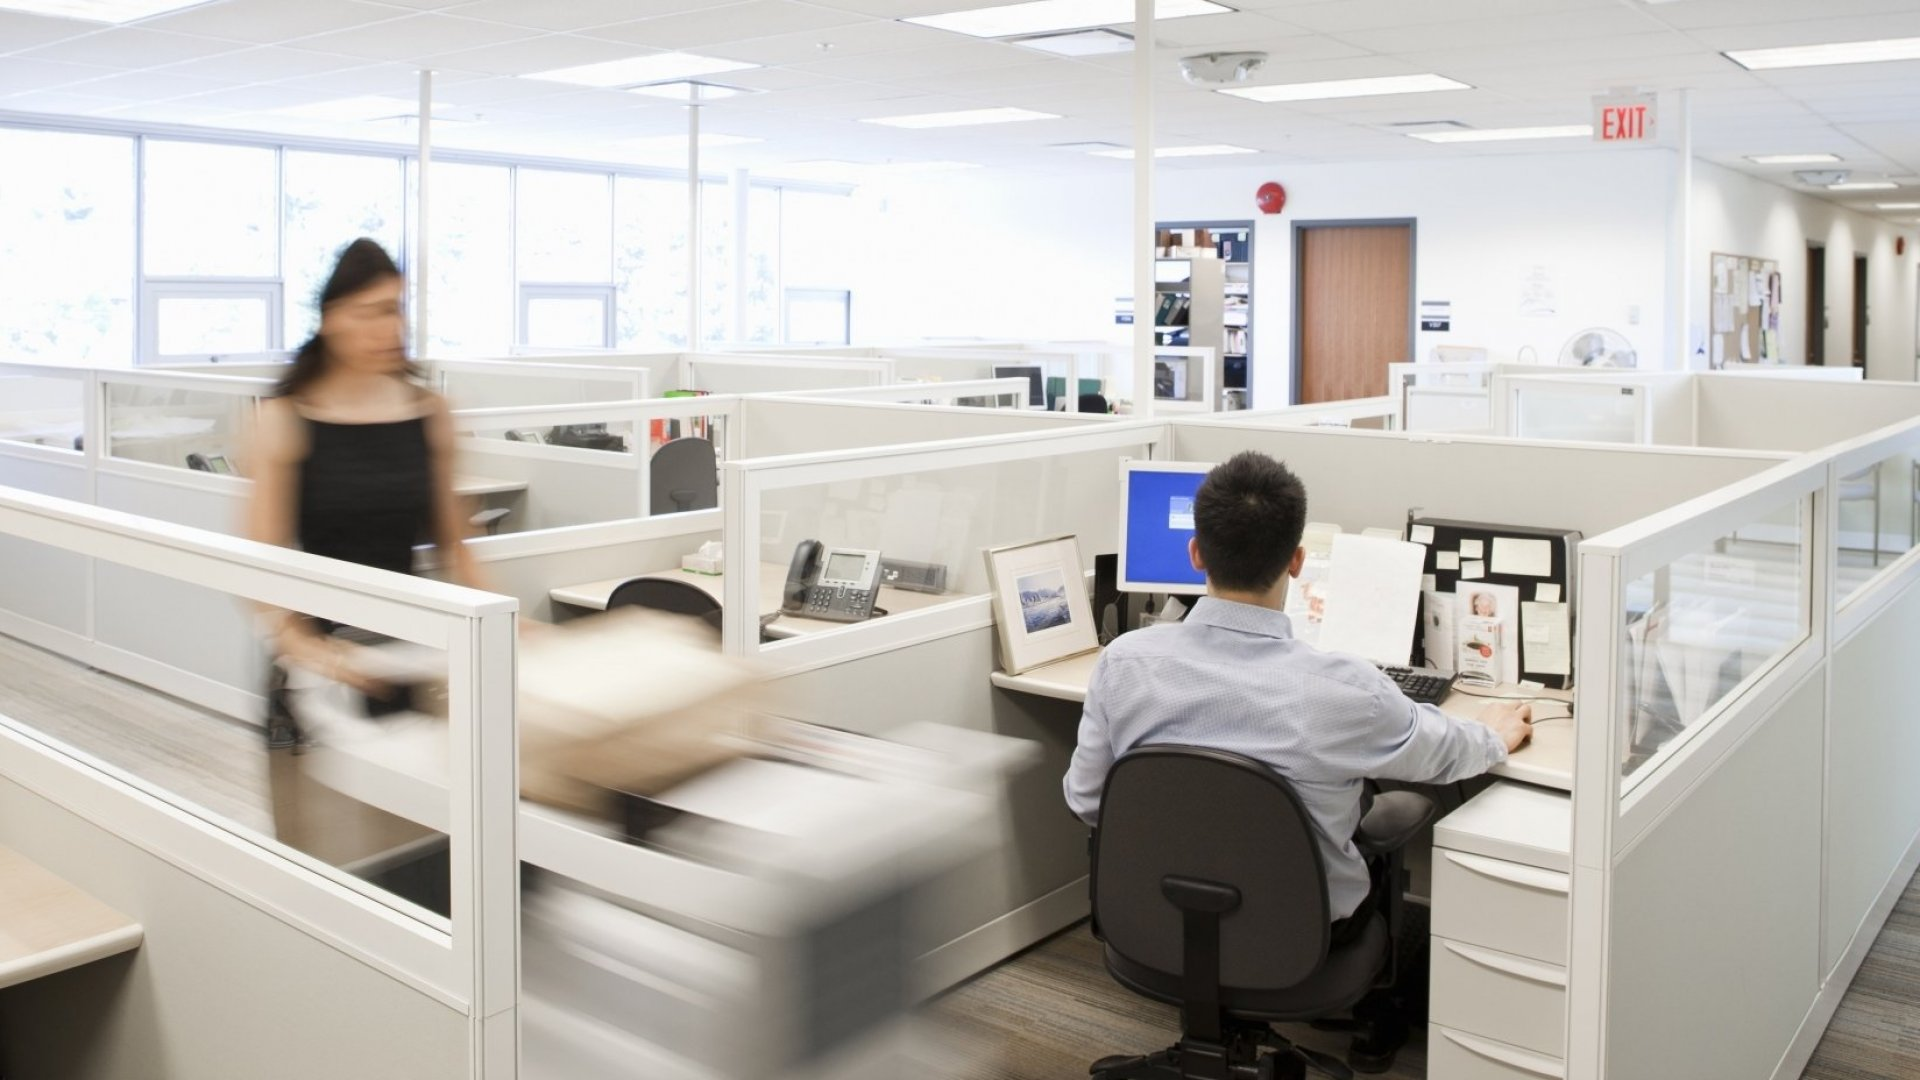 The Cubicle Was Actually Ahead of Its Time